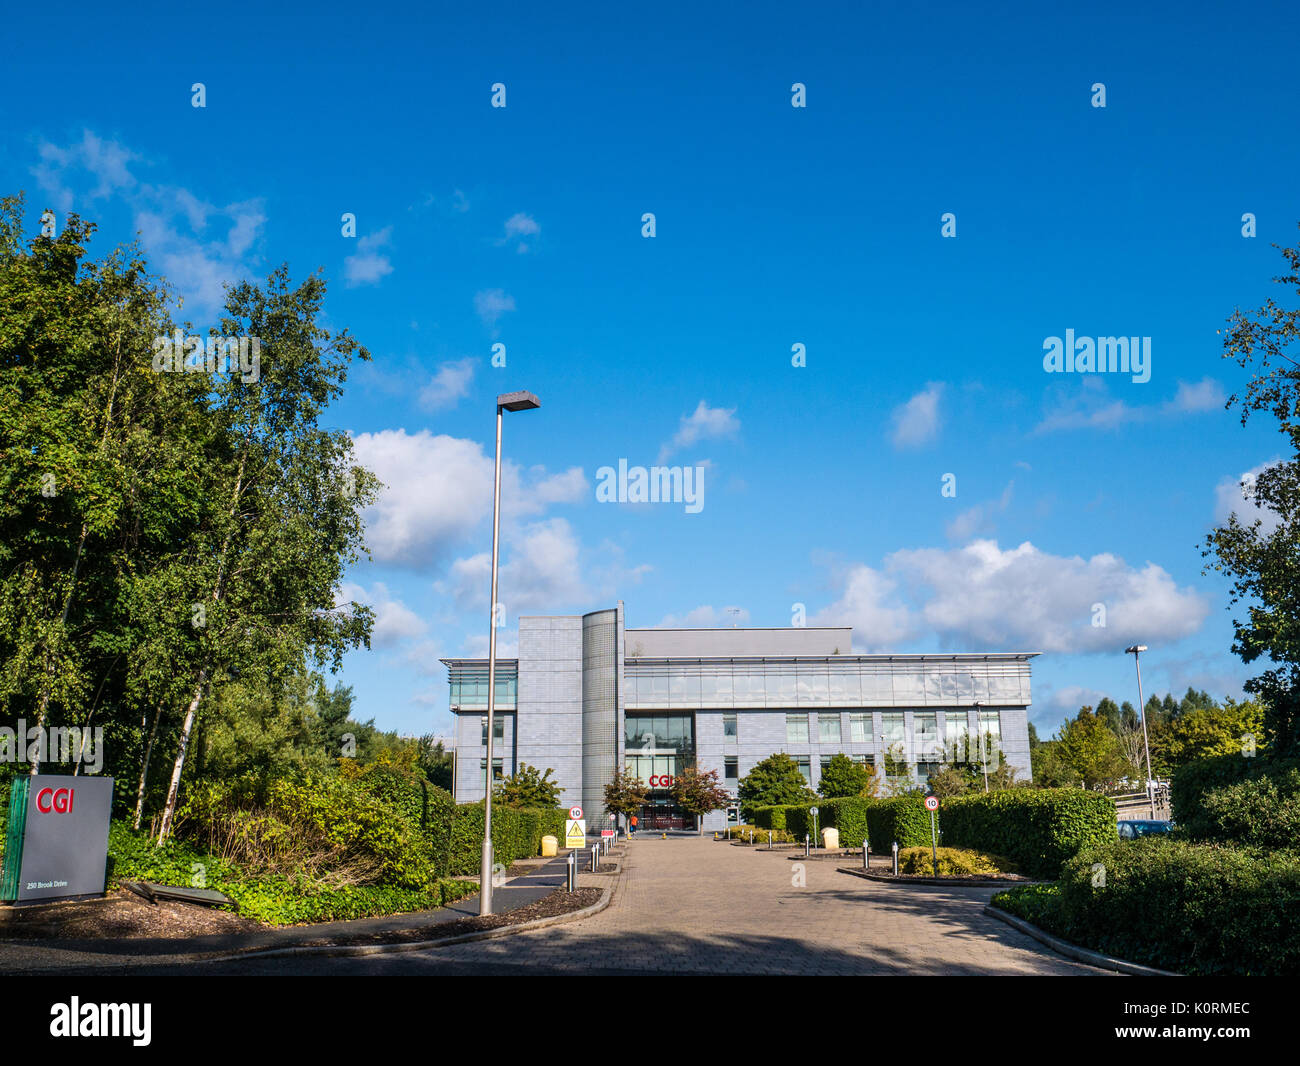 CGI, Reading, Berkshire, England - Stock Image